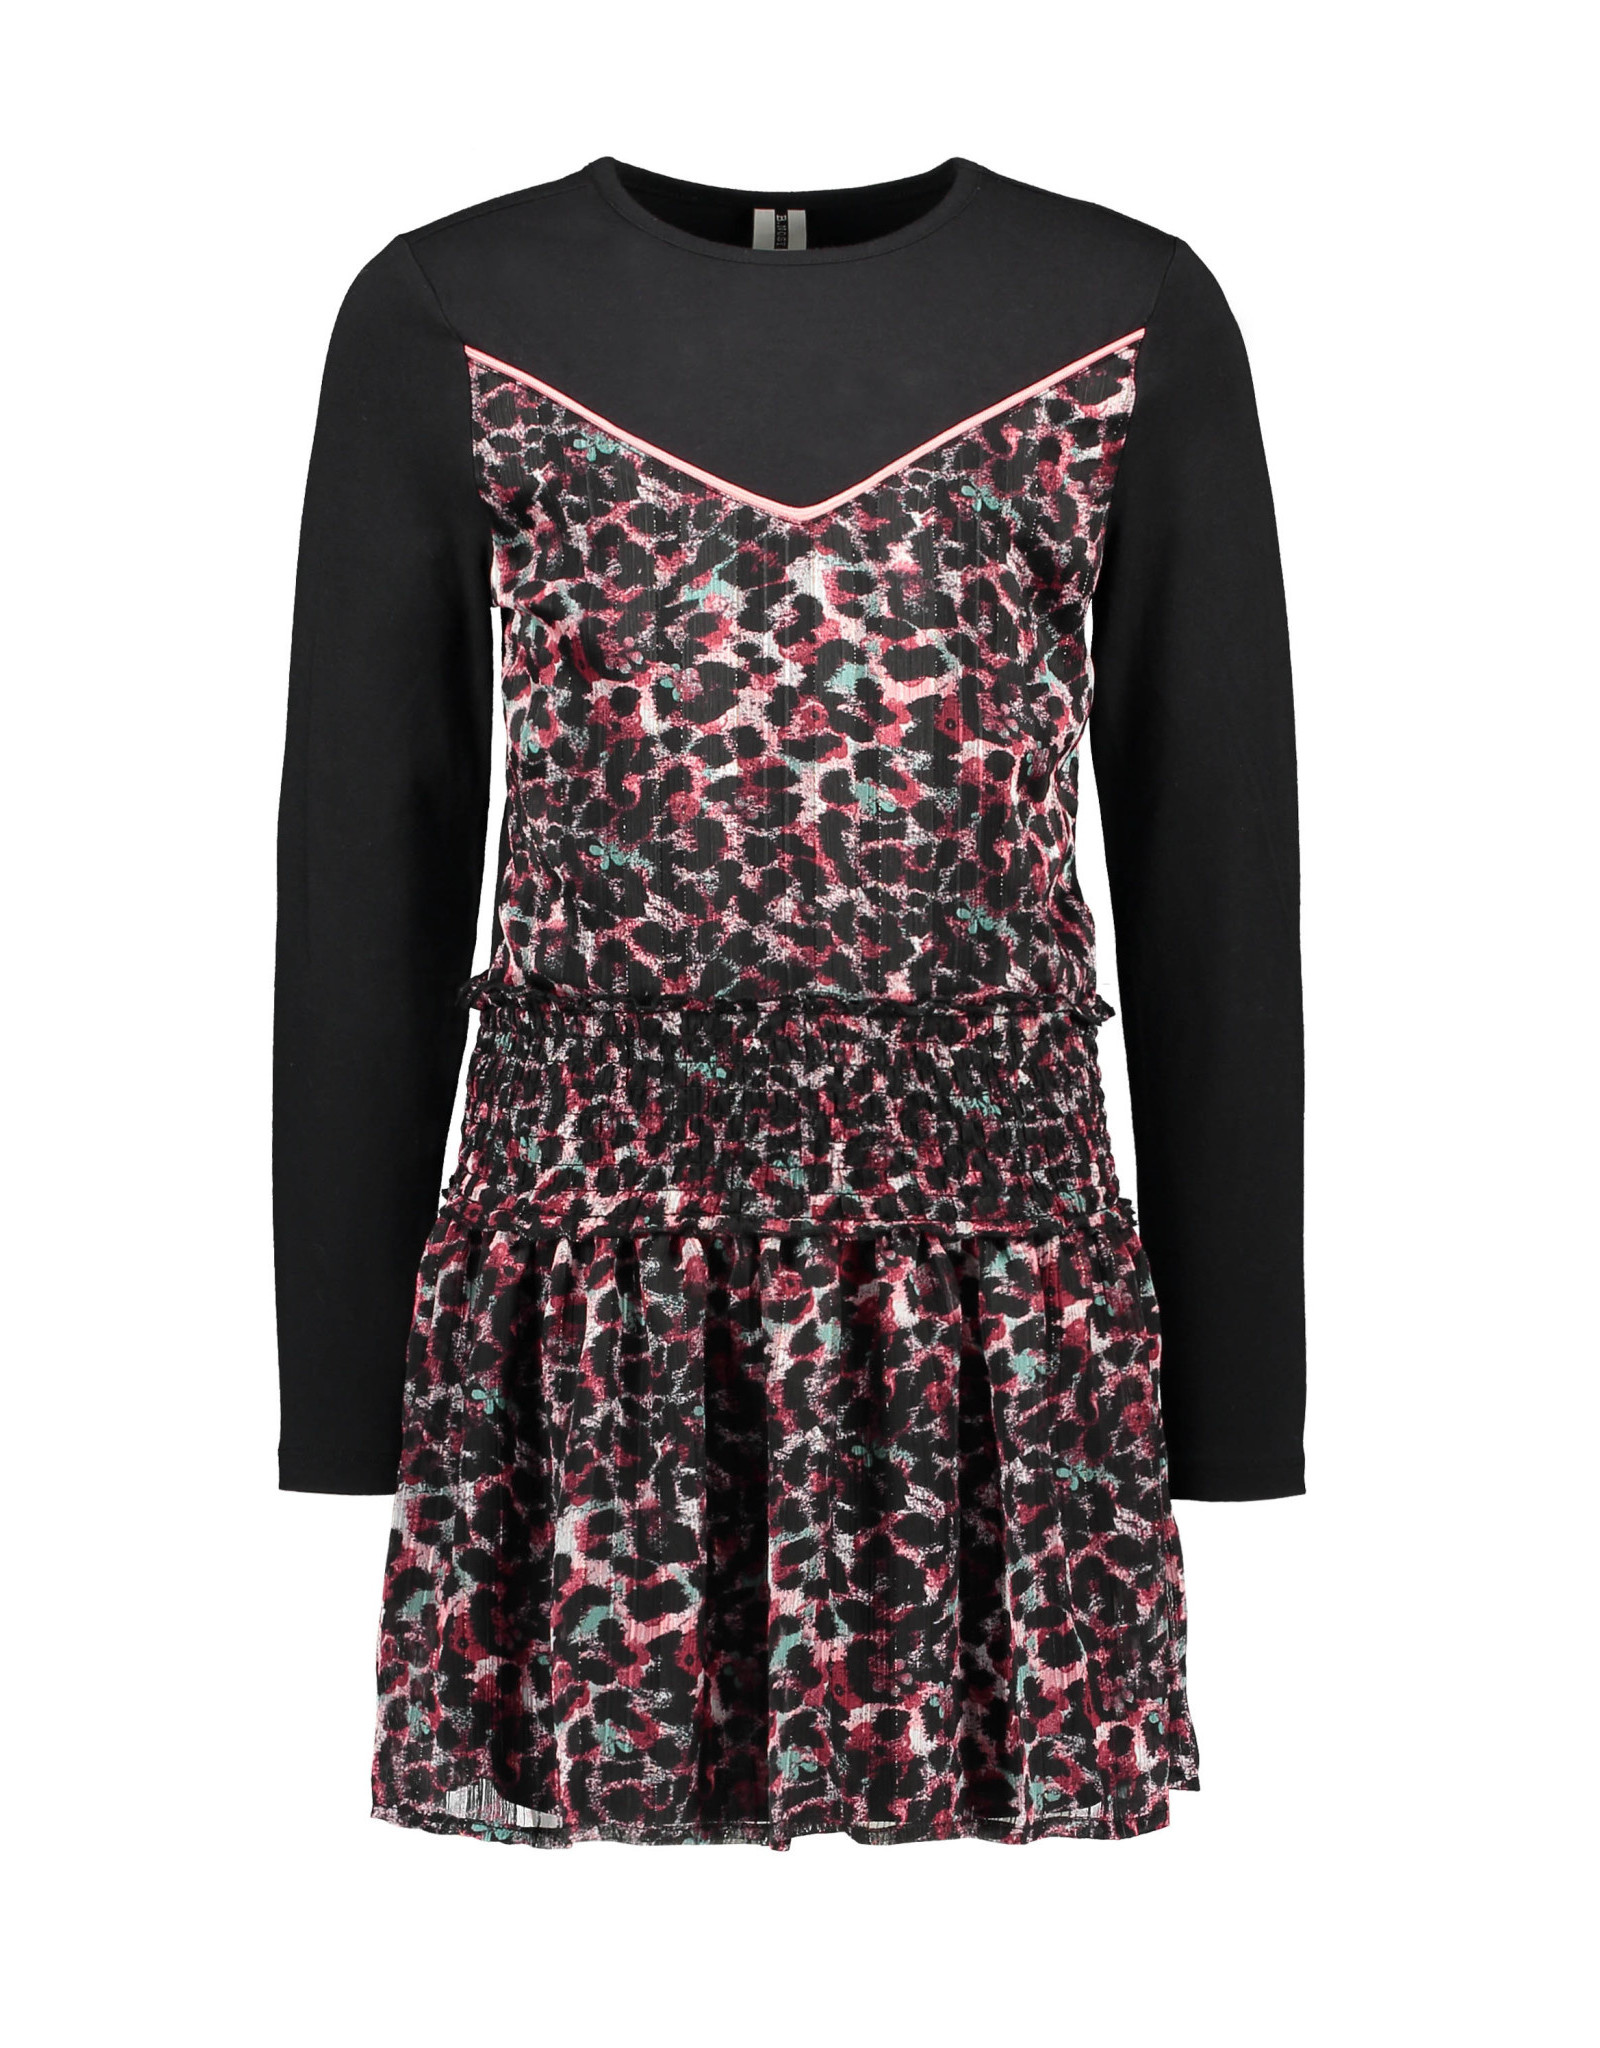 B-nosy Girls dress with top part knitting and skirt part woven 088 brushed AO